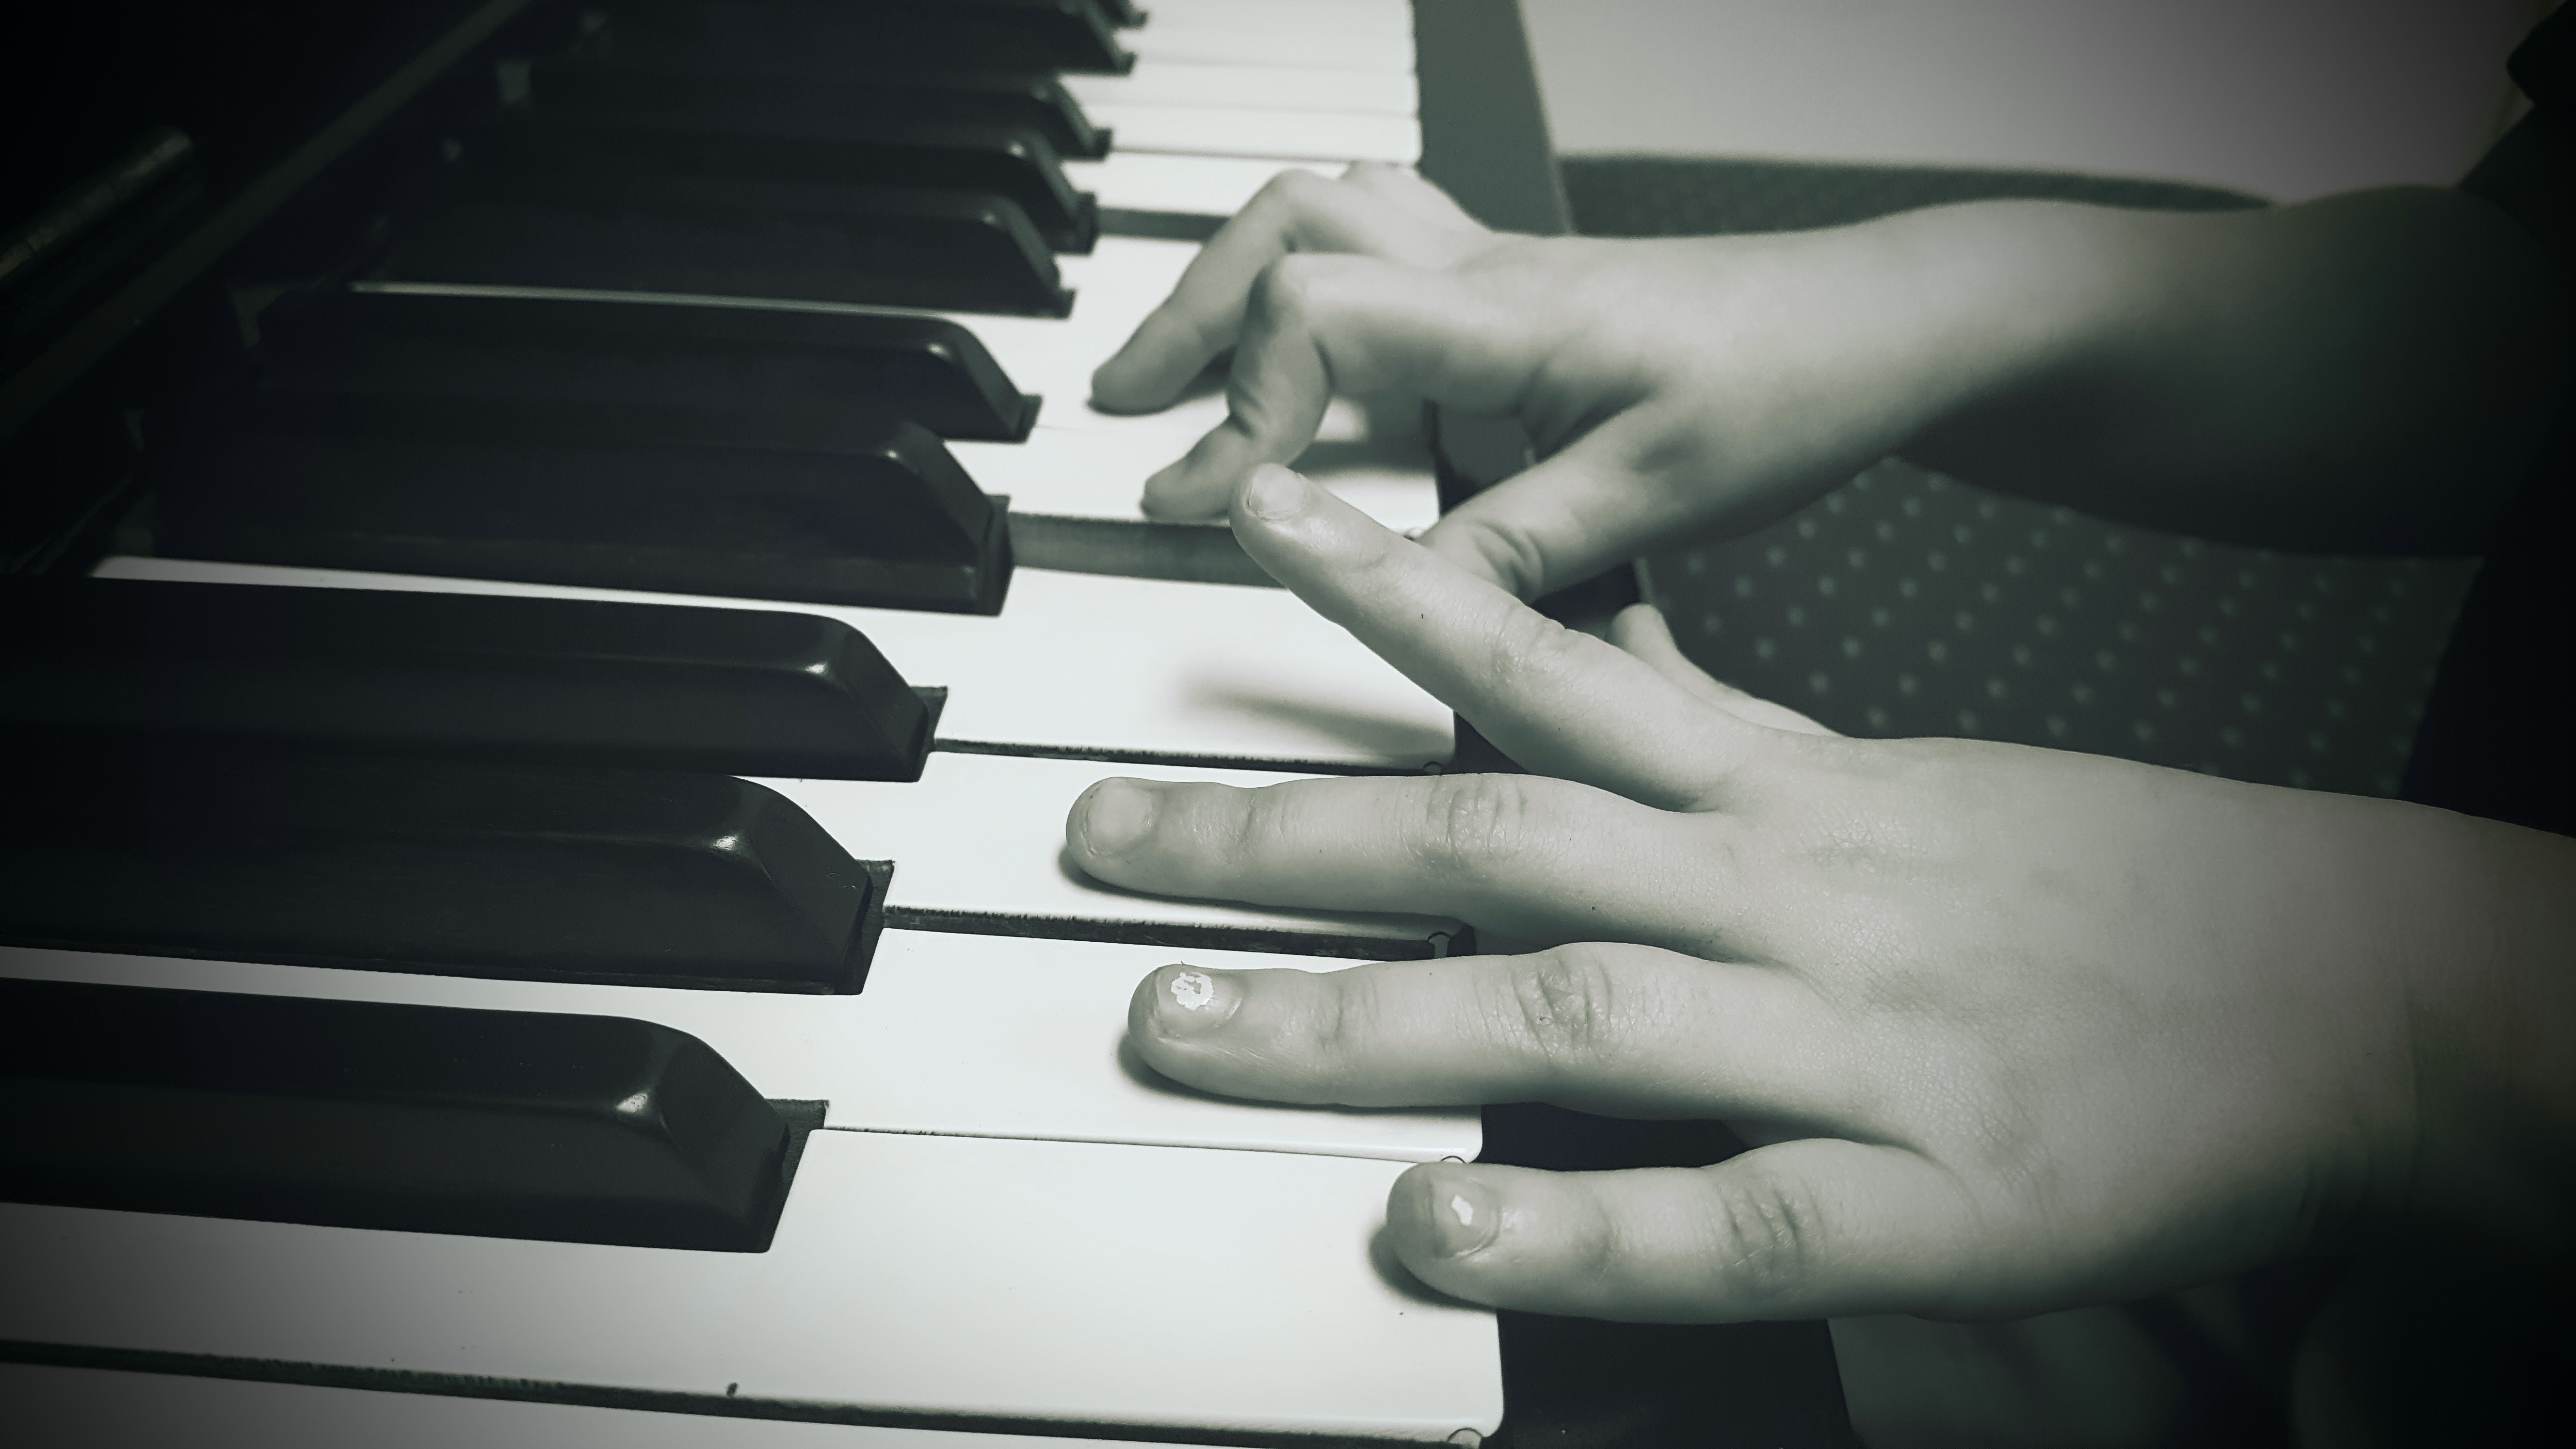 When should my child start learning to play piano? - Quora